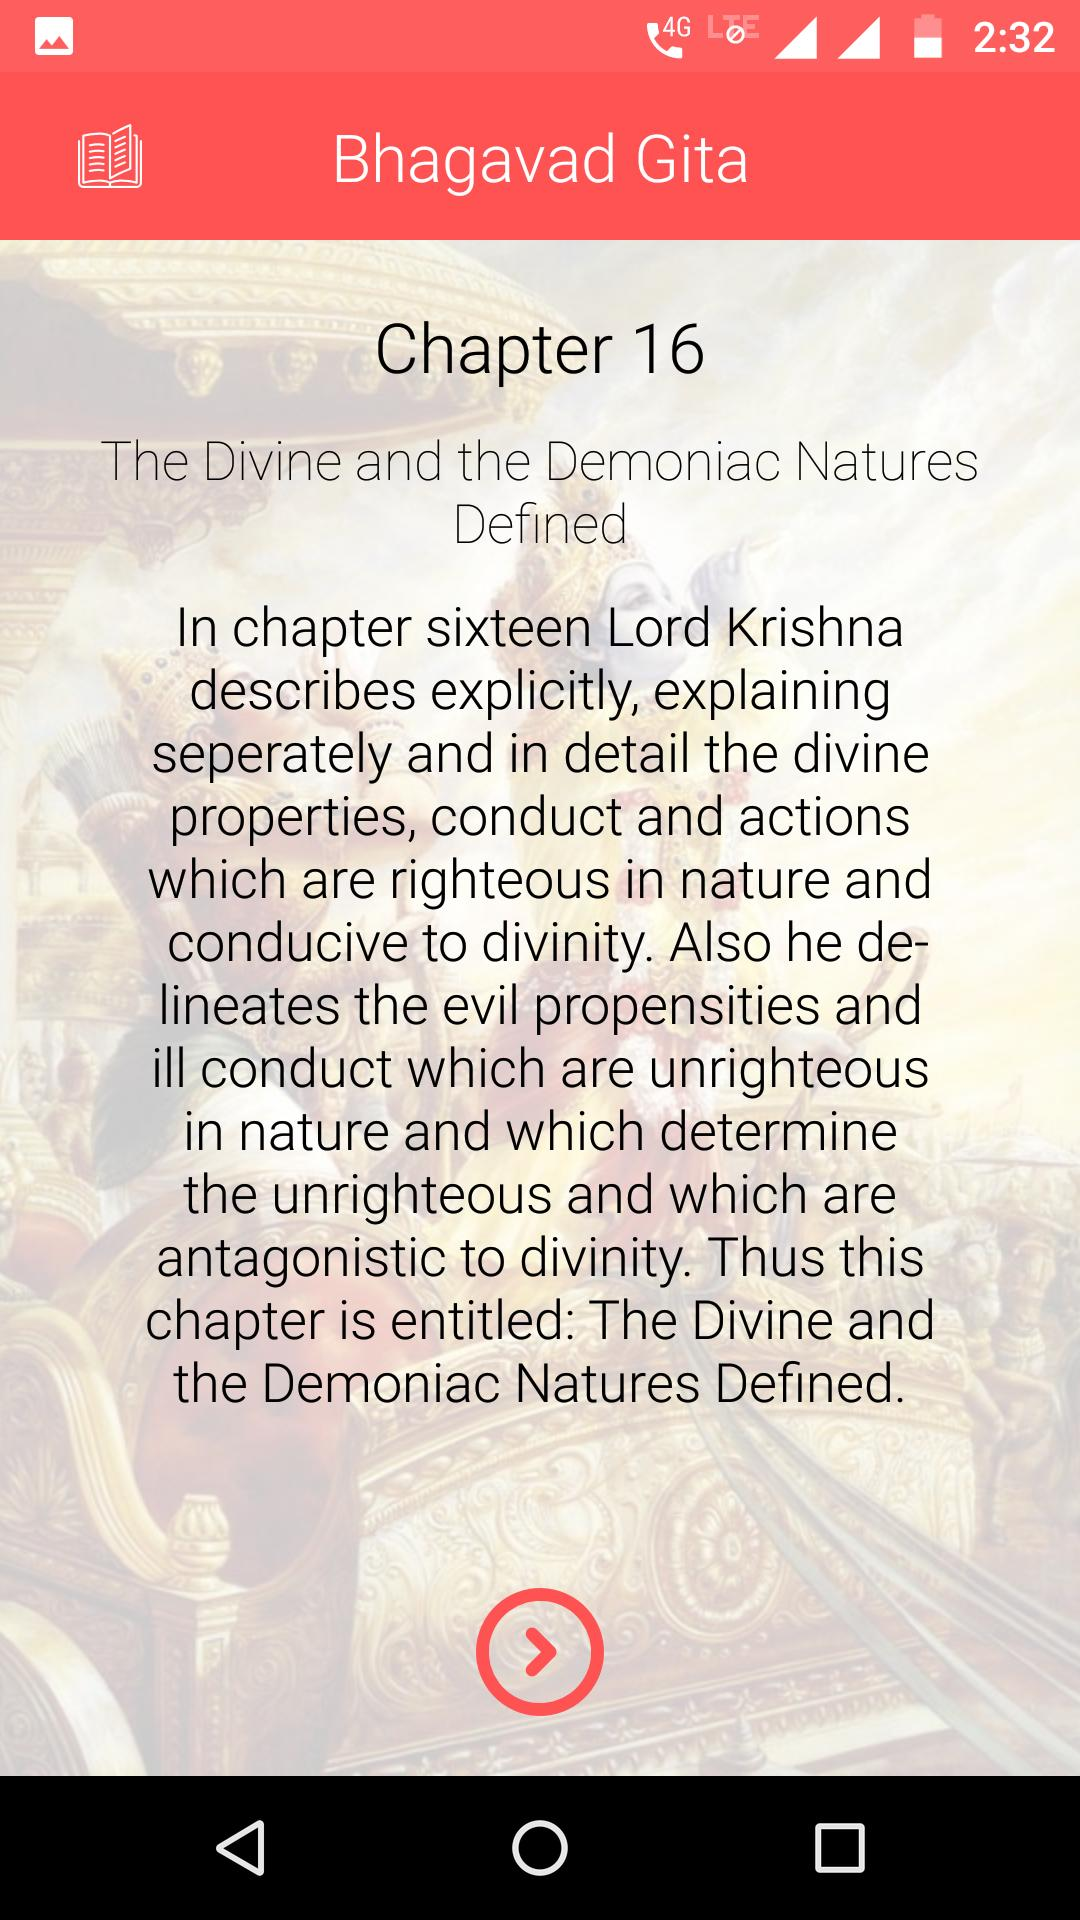 Offline Daily Bhagavad Gita in English for Android - APK